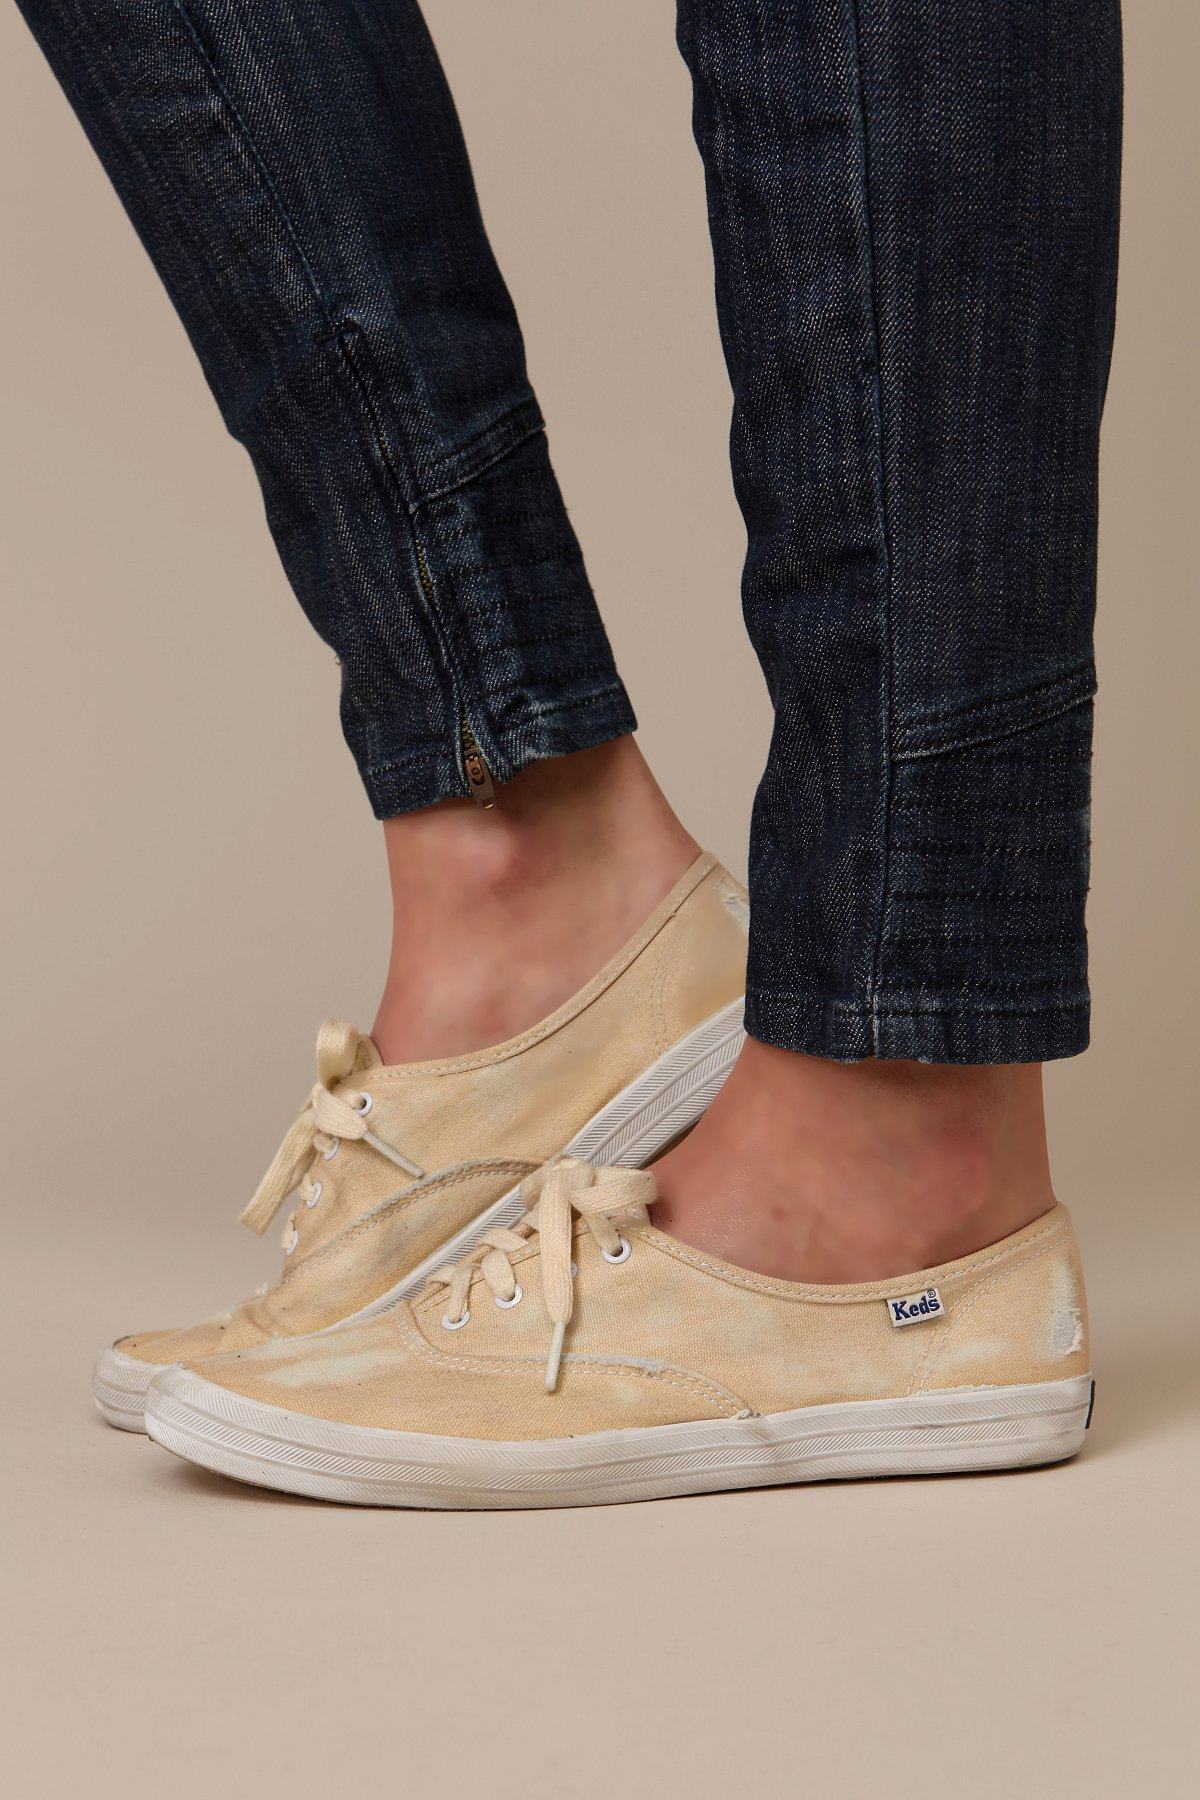 Stained And Distressed Keds